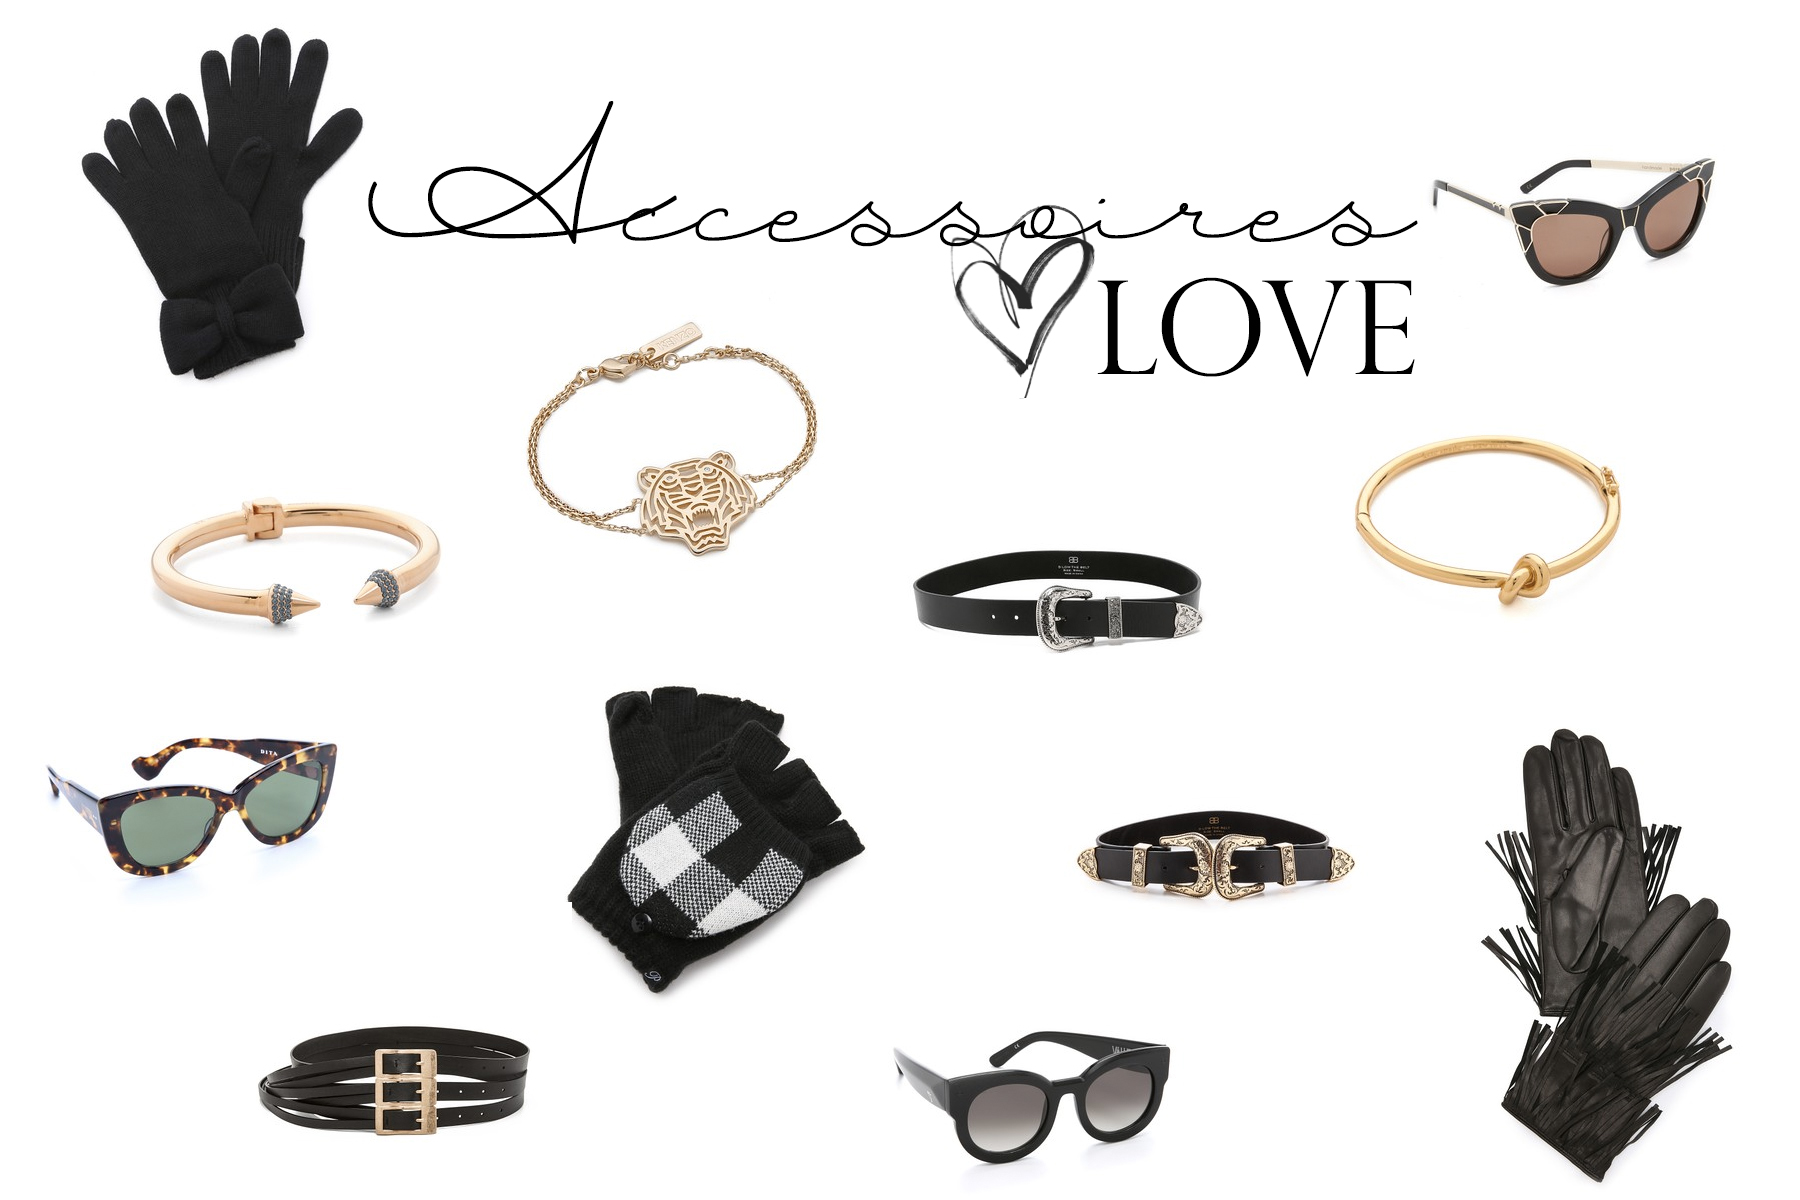 accessoires 2016 new jewelry sunglasses gloves belts shopbop shopping inspo fashion fashionblogger germany styling accessory leather gold metal modeblog cats & dogs blog ricarda schernus styleblogger